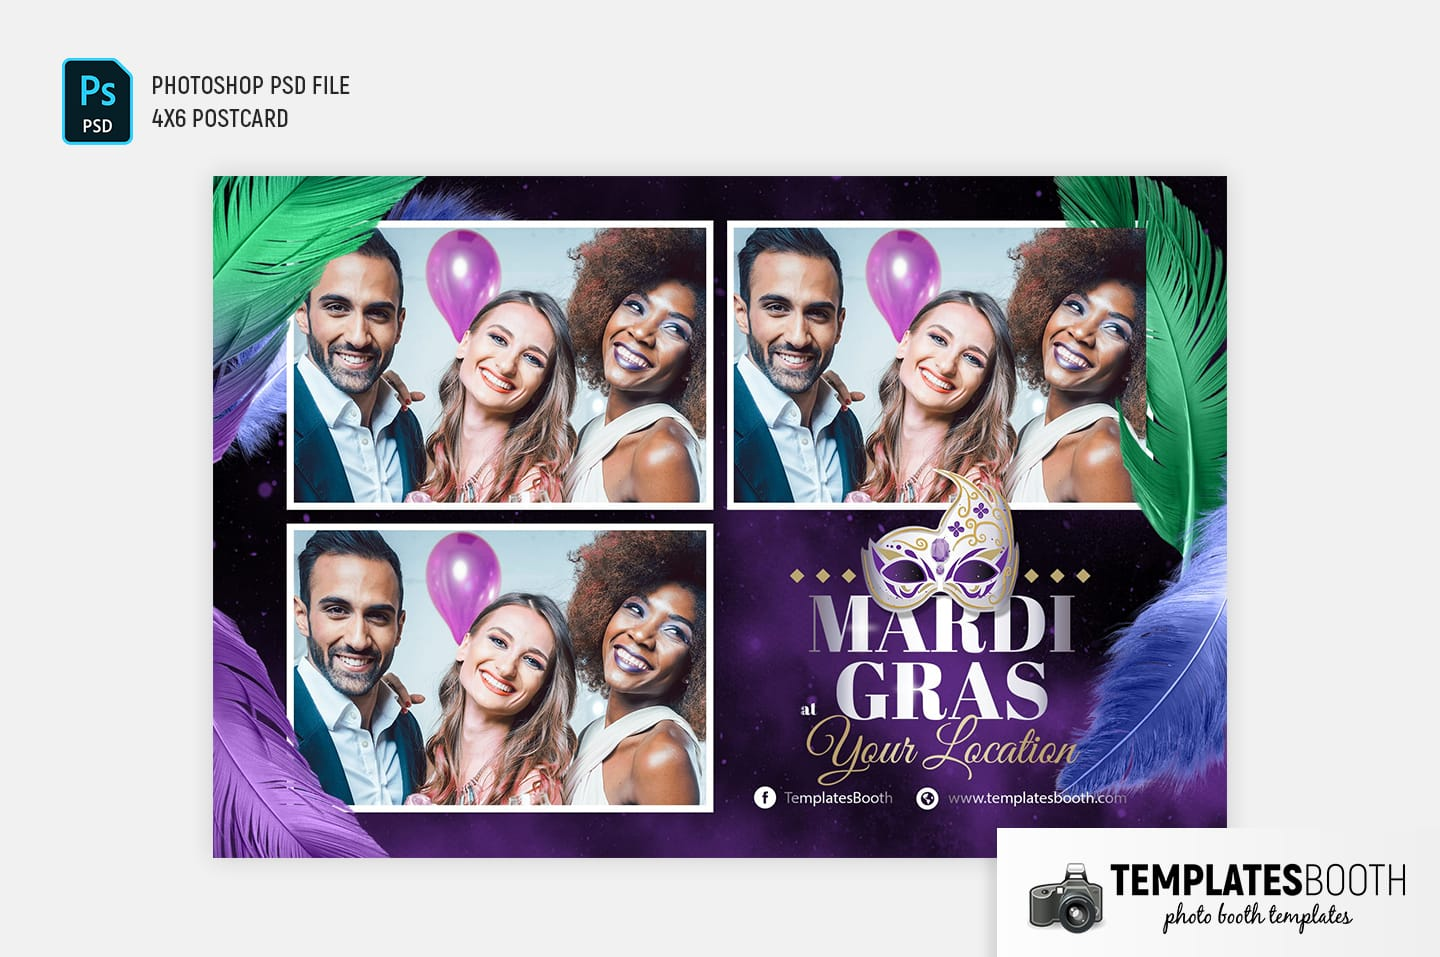 Mardi Gras Photo Booth Template (4x6 postcard landscape)